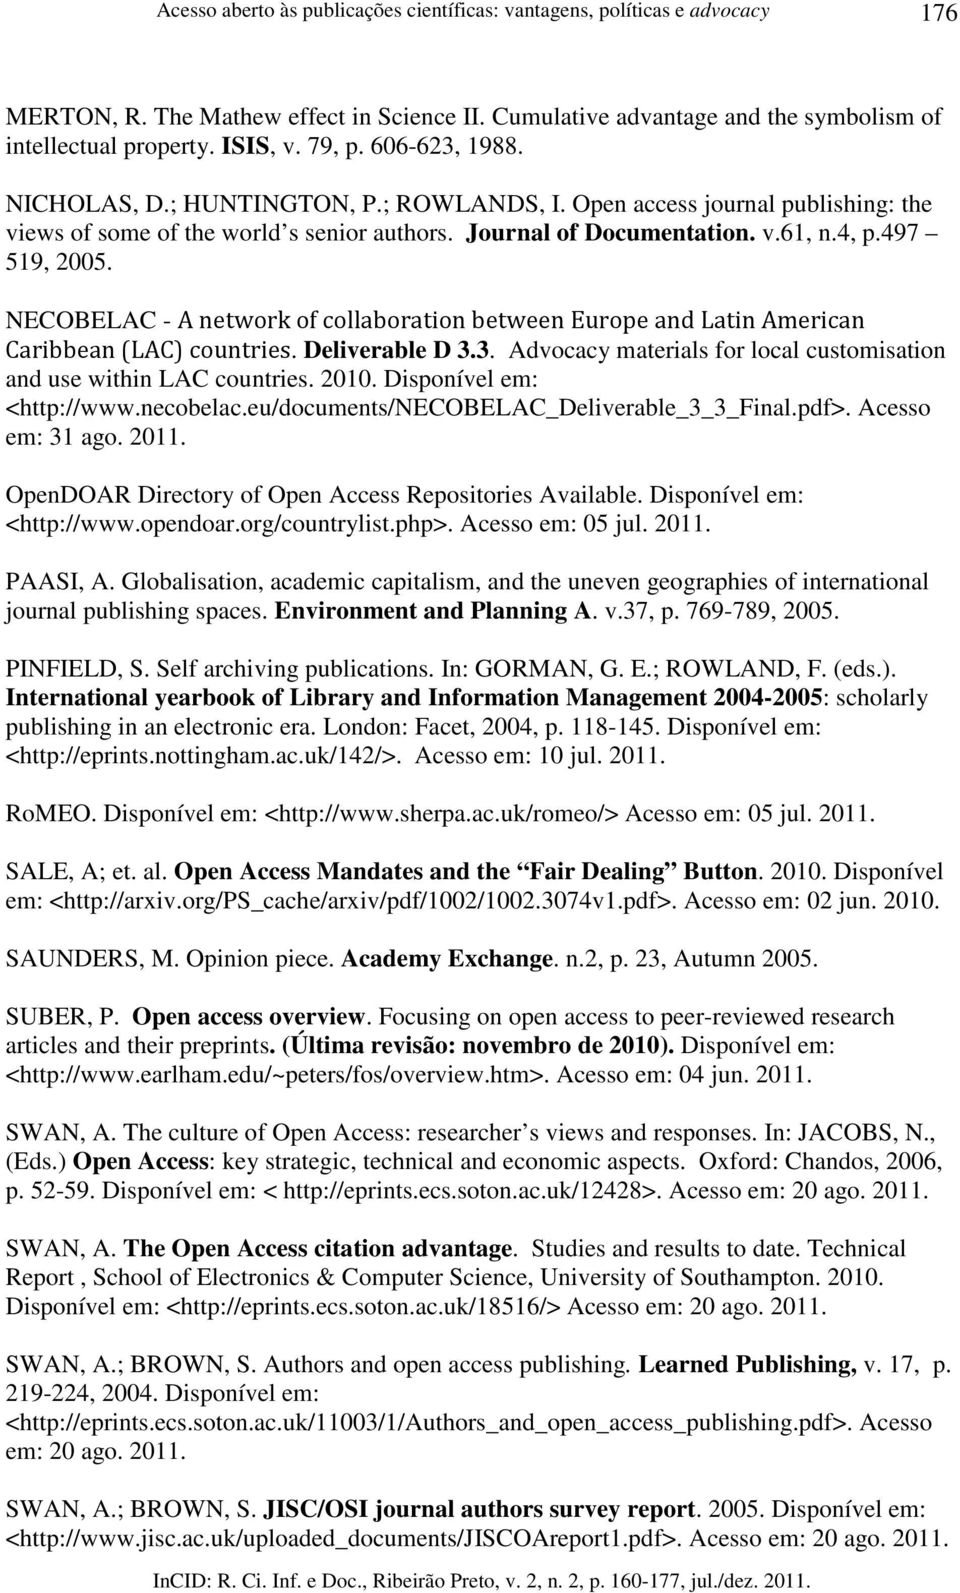 NECOBELAC -. Deliverable D 3.3. Advocacy materials for local customisation and use within LAC countries. 2010. Disponível em: <http://www.necobelac.eu/documents/necobelac_deliverable_3_3_final.pdf>.